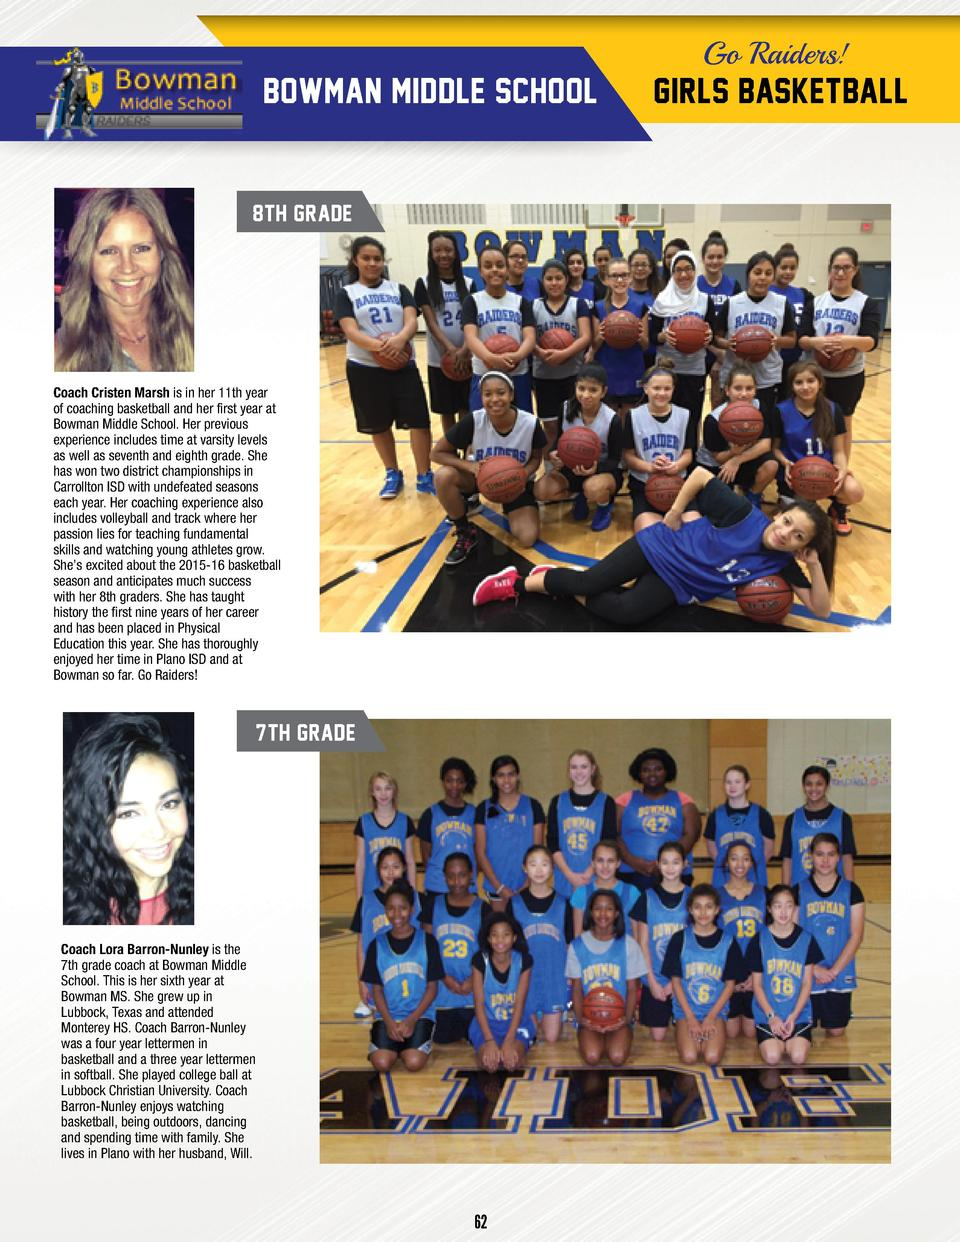 Go Raiders   BOWMAN MIDDLE SCHOOL  8TH GRADE  Coach Cristen Marsh is in her 11th year of coaching basketball and her first...